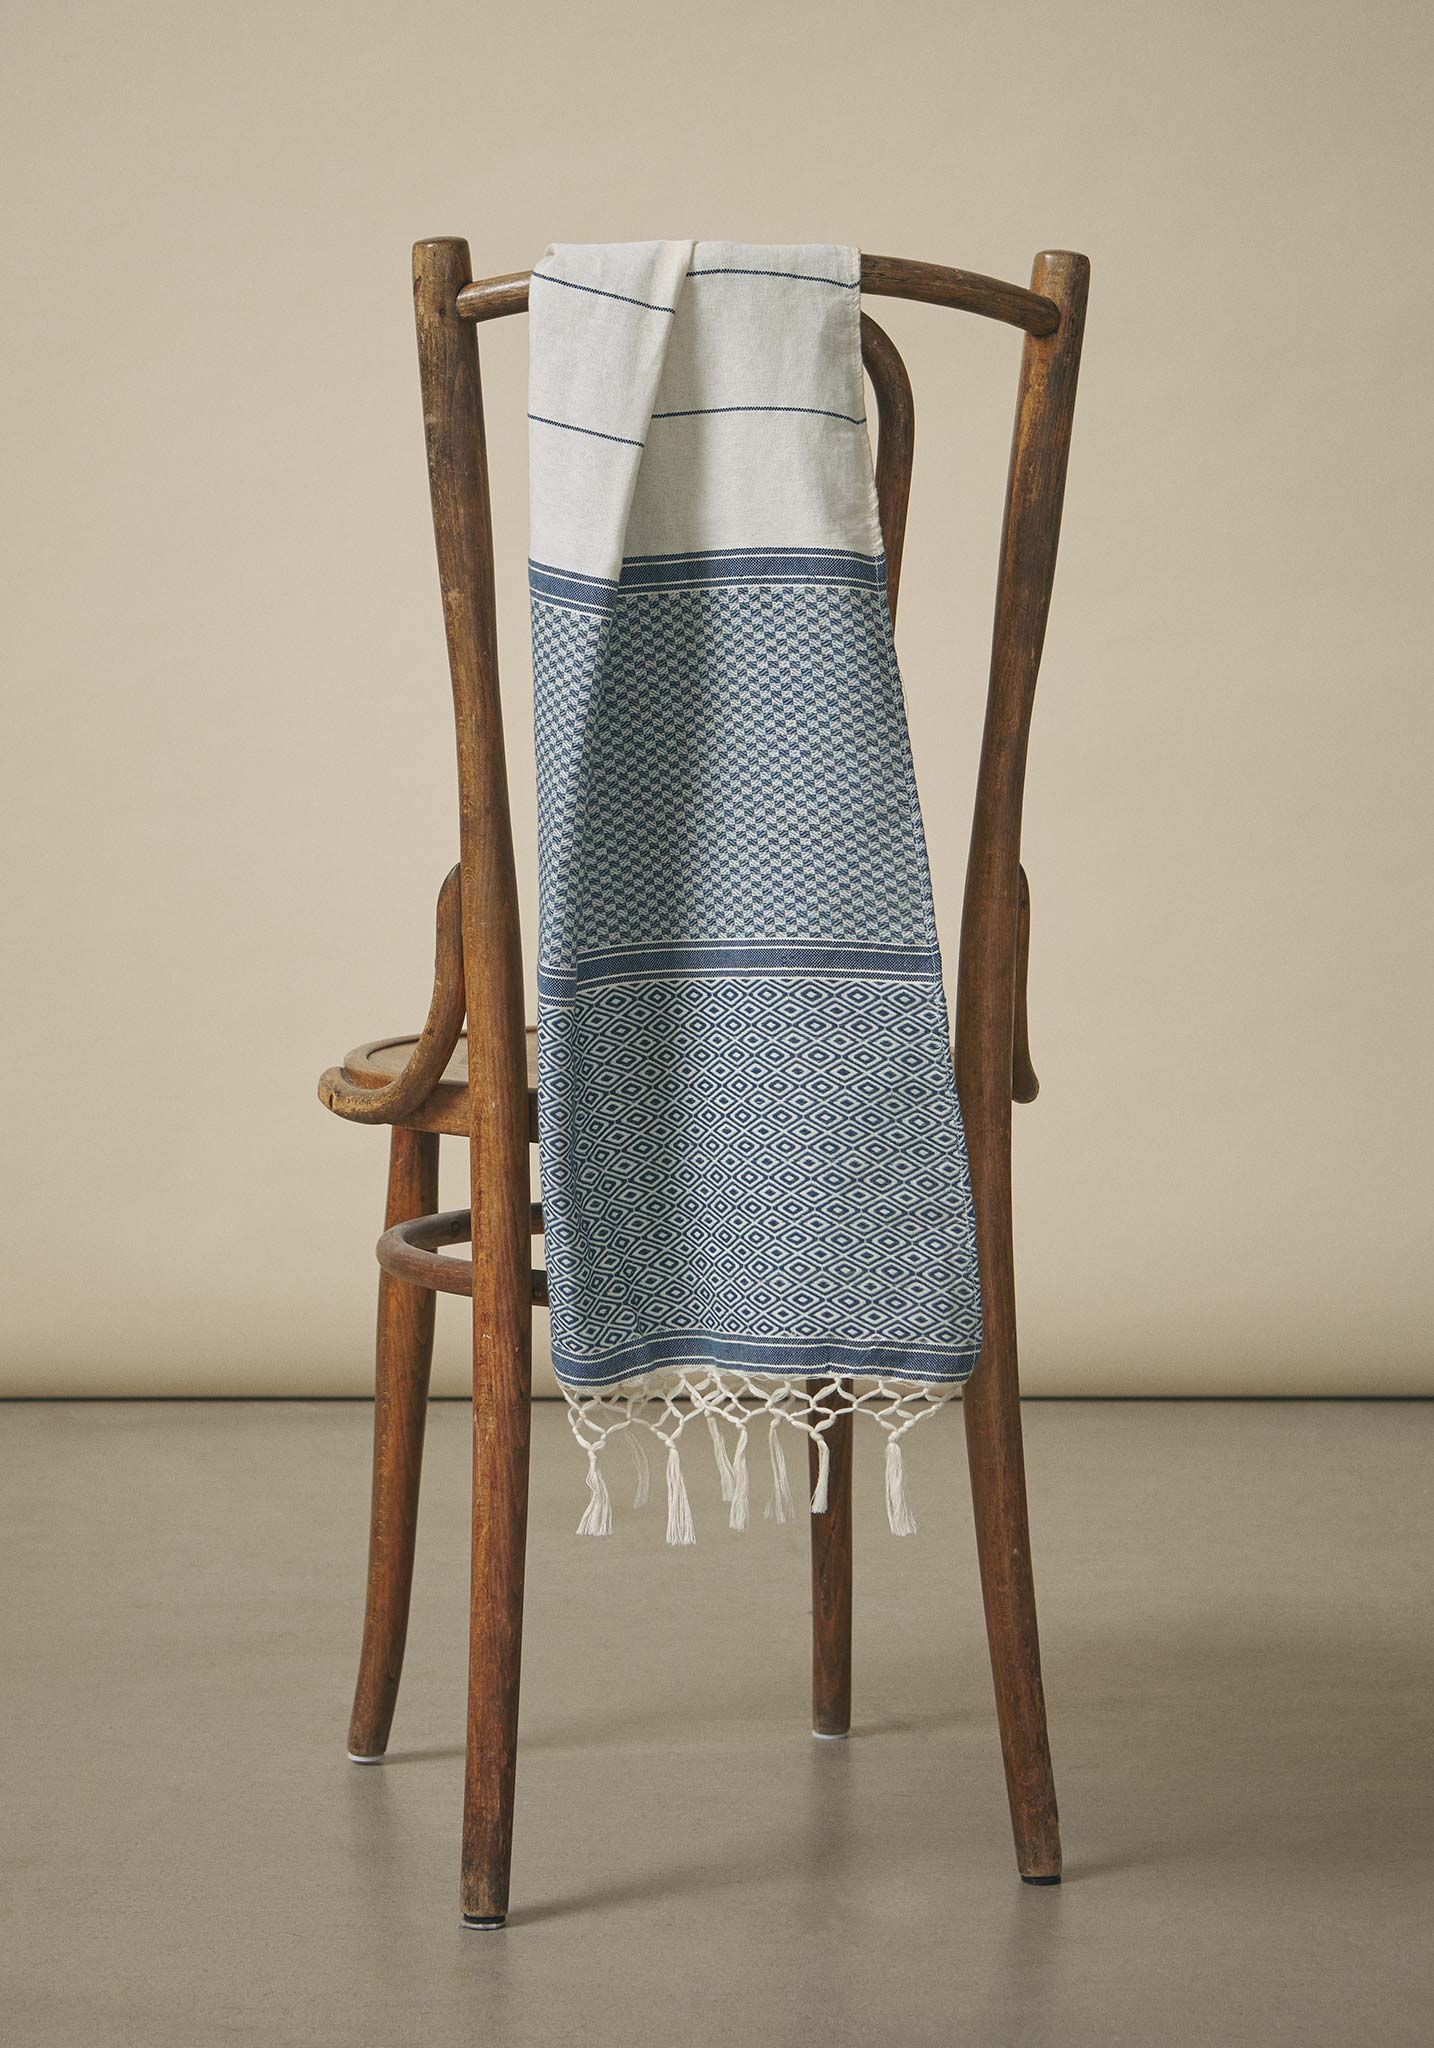 Koel, Hand-Woven Cotton Scarf, Natural Dye Blue